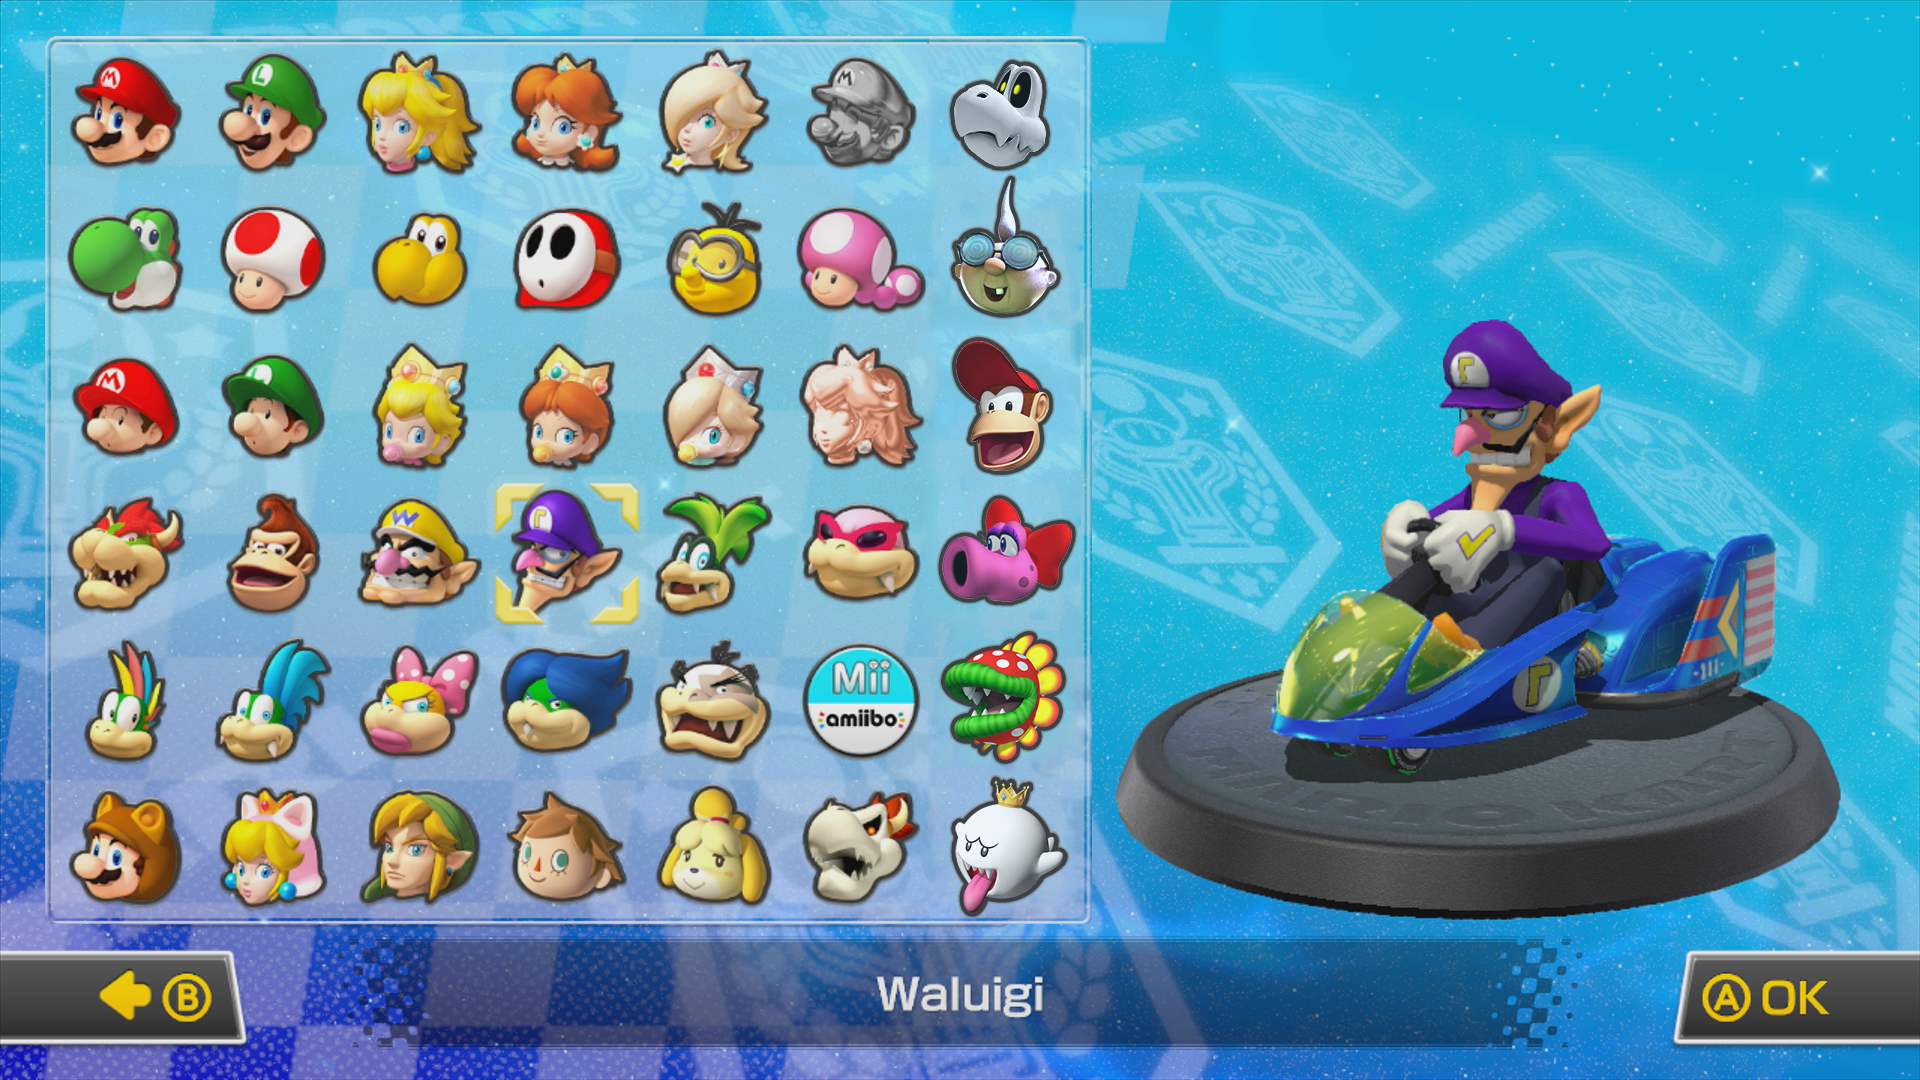 did the april update to mario kart 8 add new characters